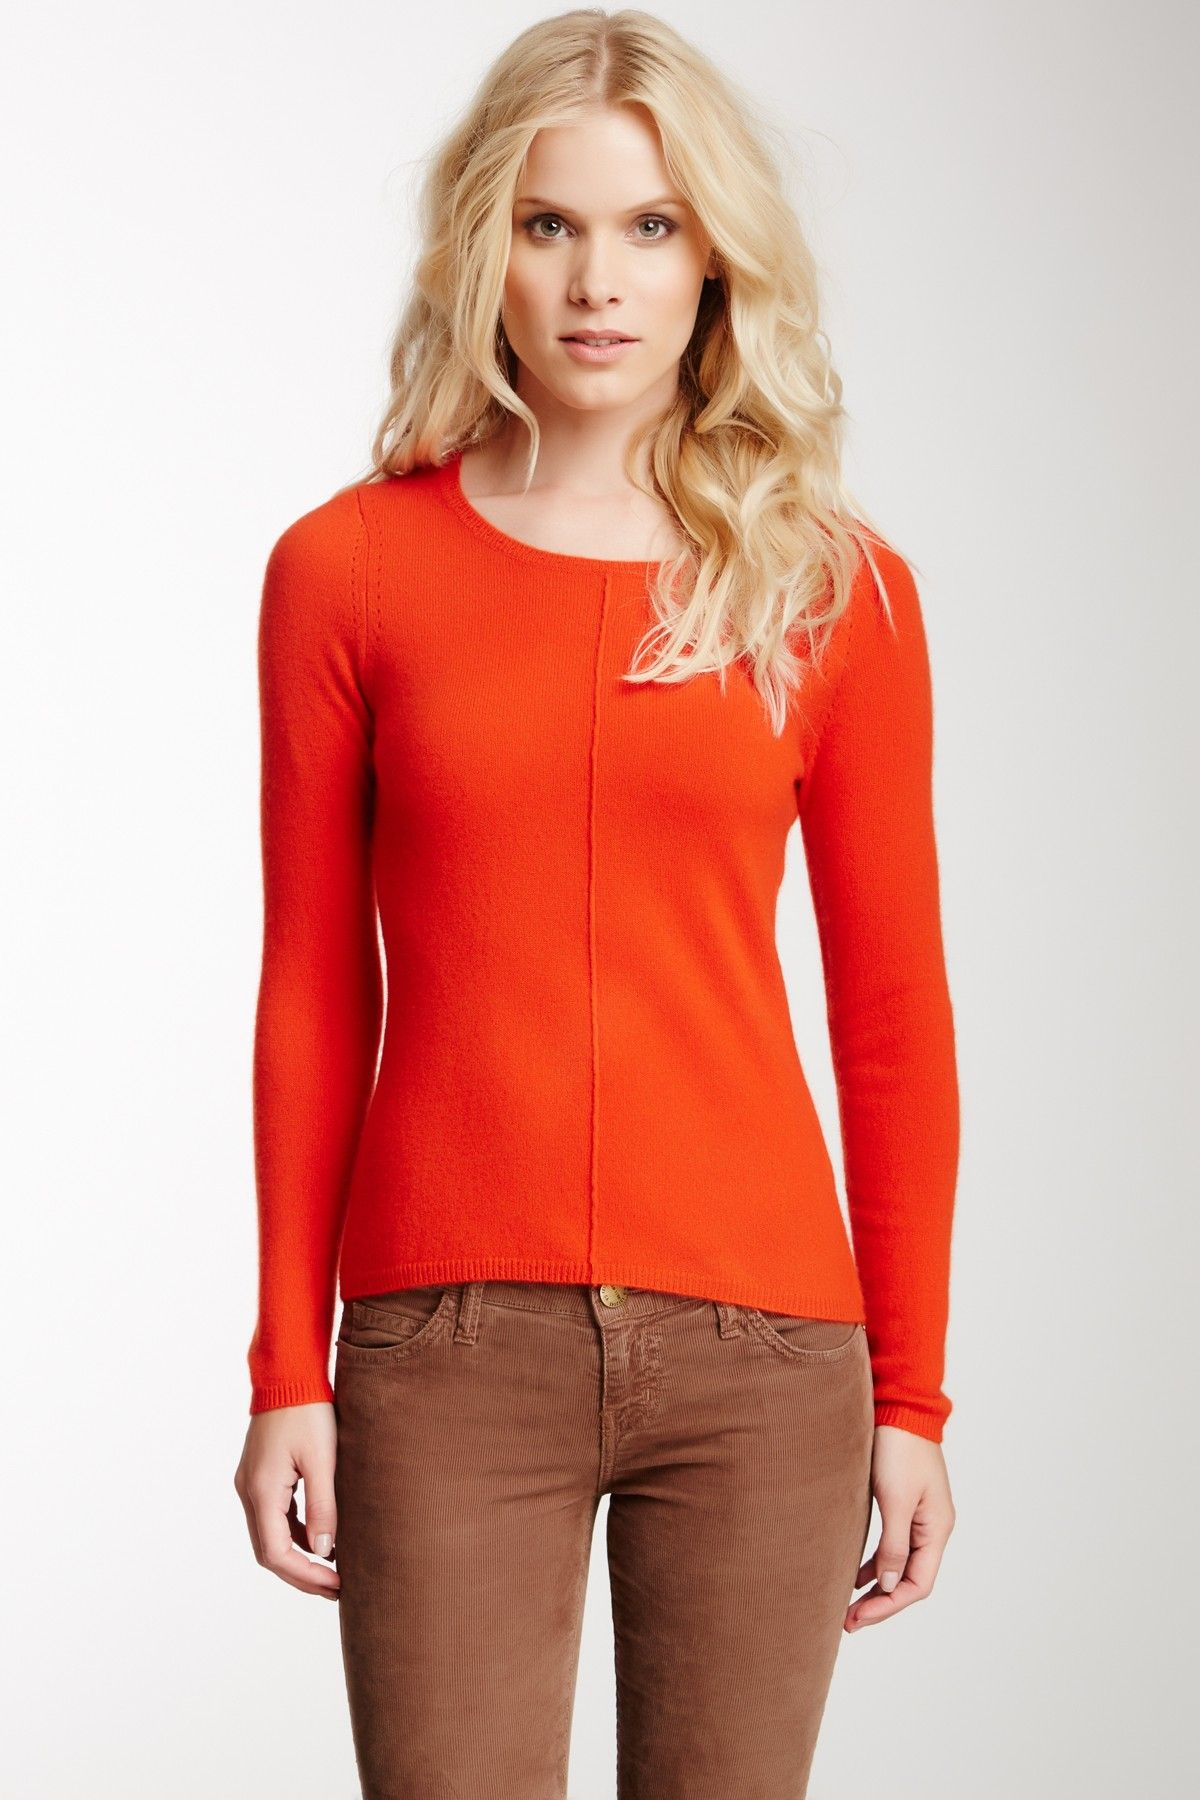 Center Seam Cashmere Sweater | Clothing and Style | Pinterest ...